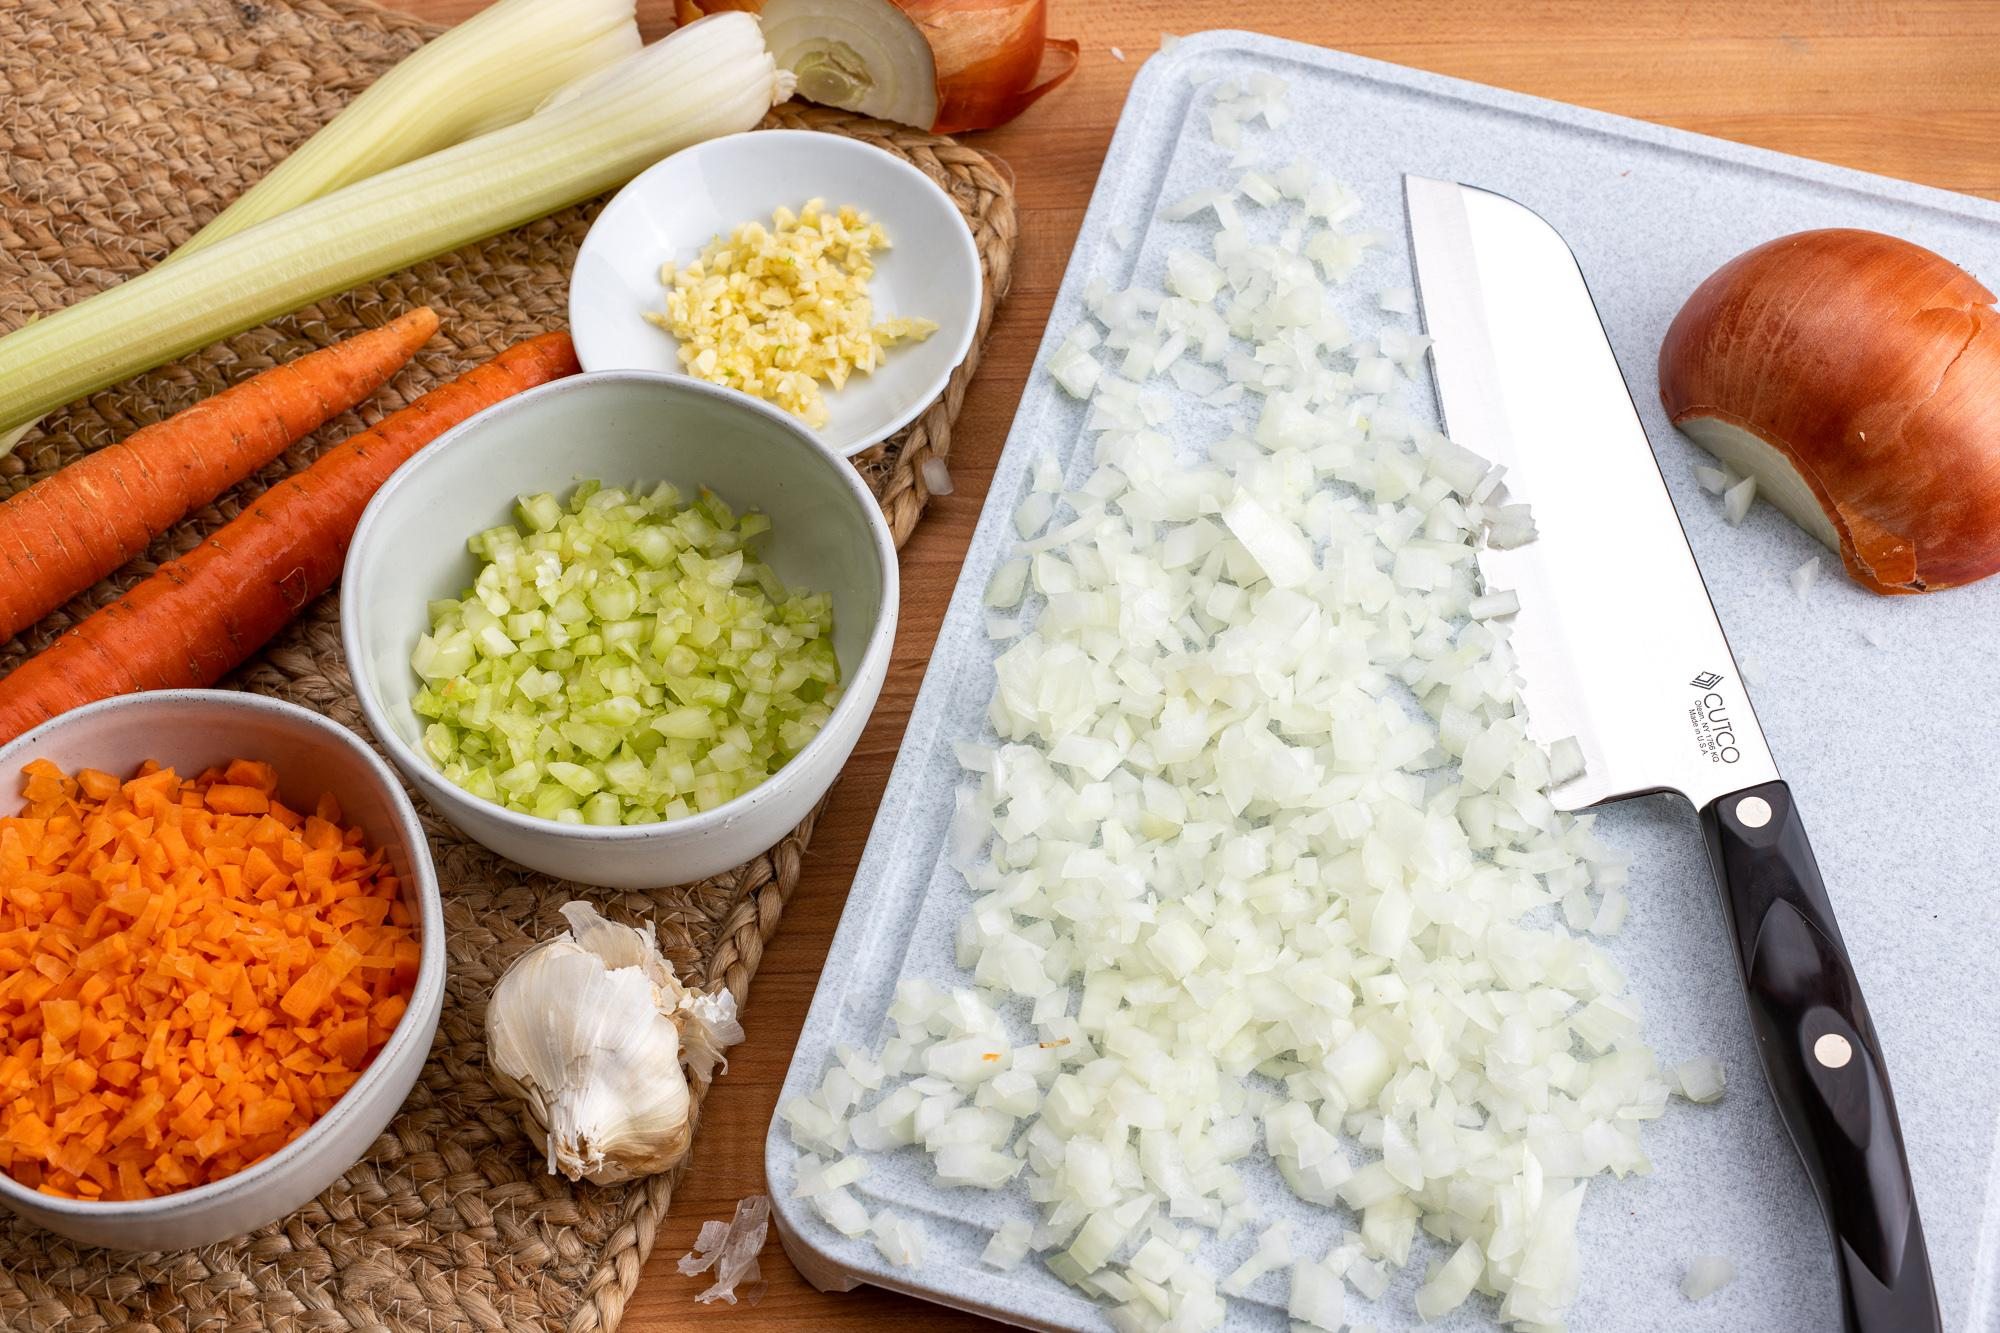 Prepped onion, celery and carrot with the Santoku.